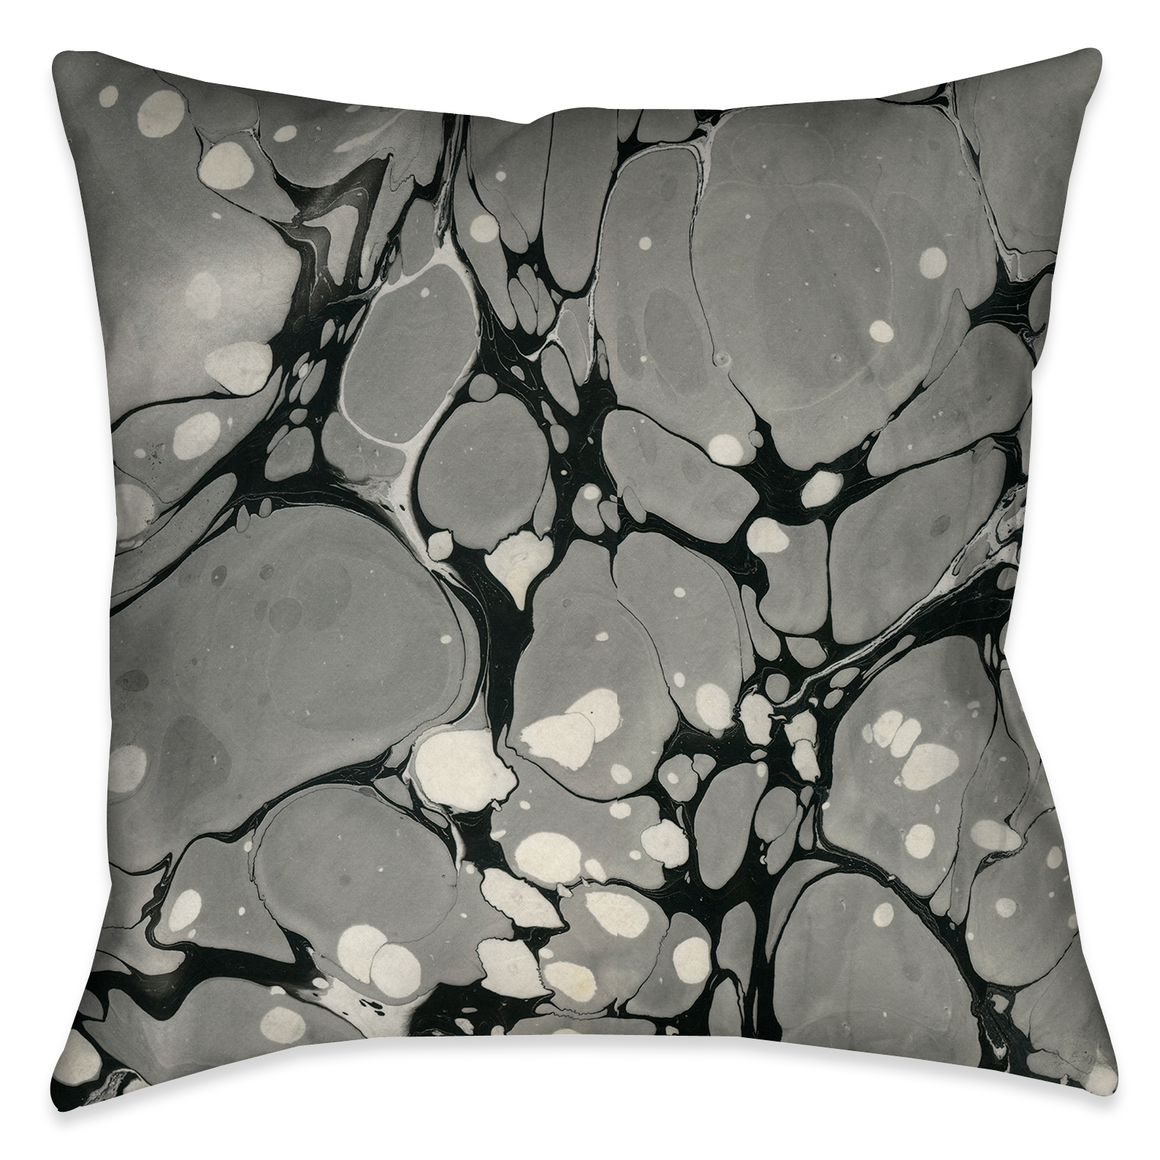 Gray Marble Outdoor Decorative Pillow